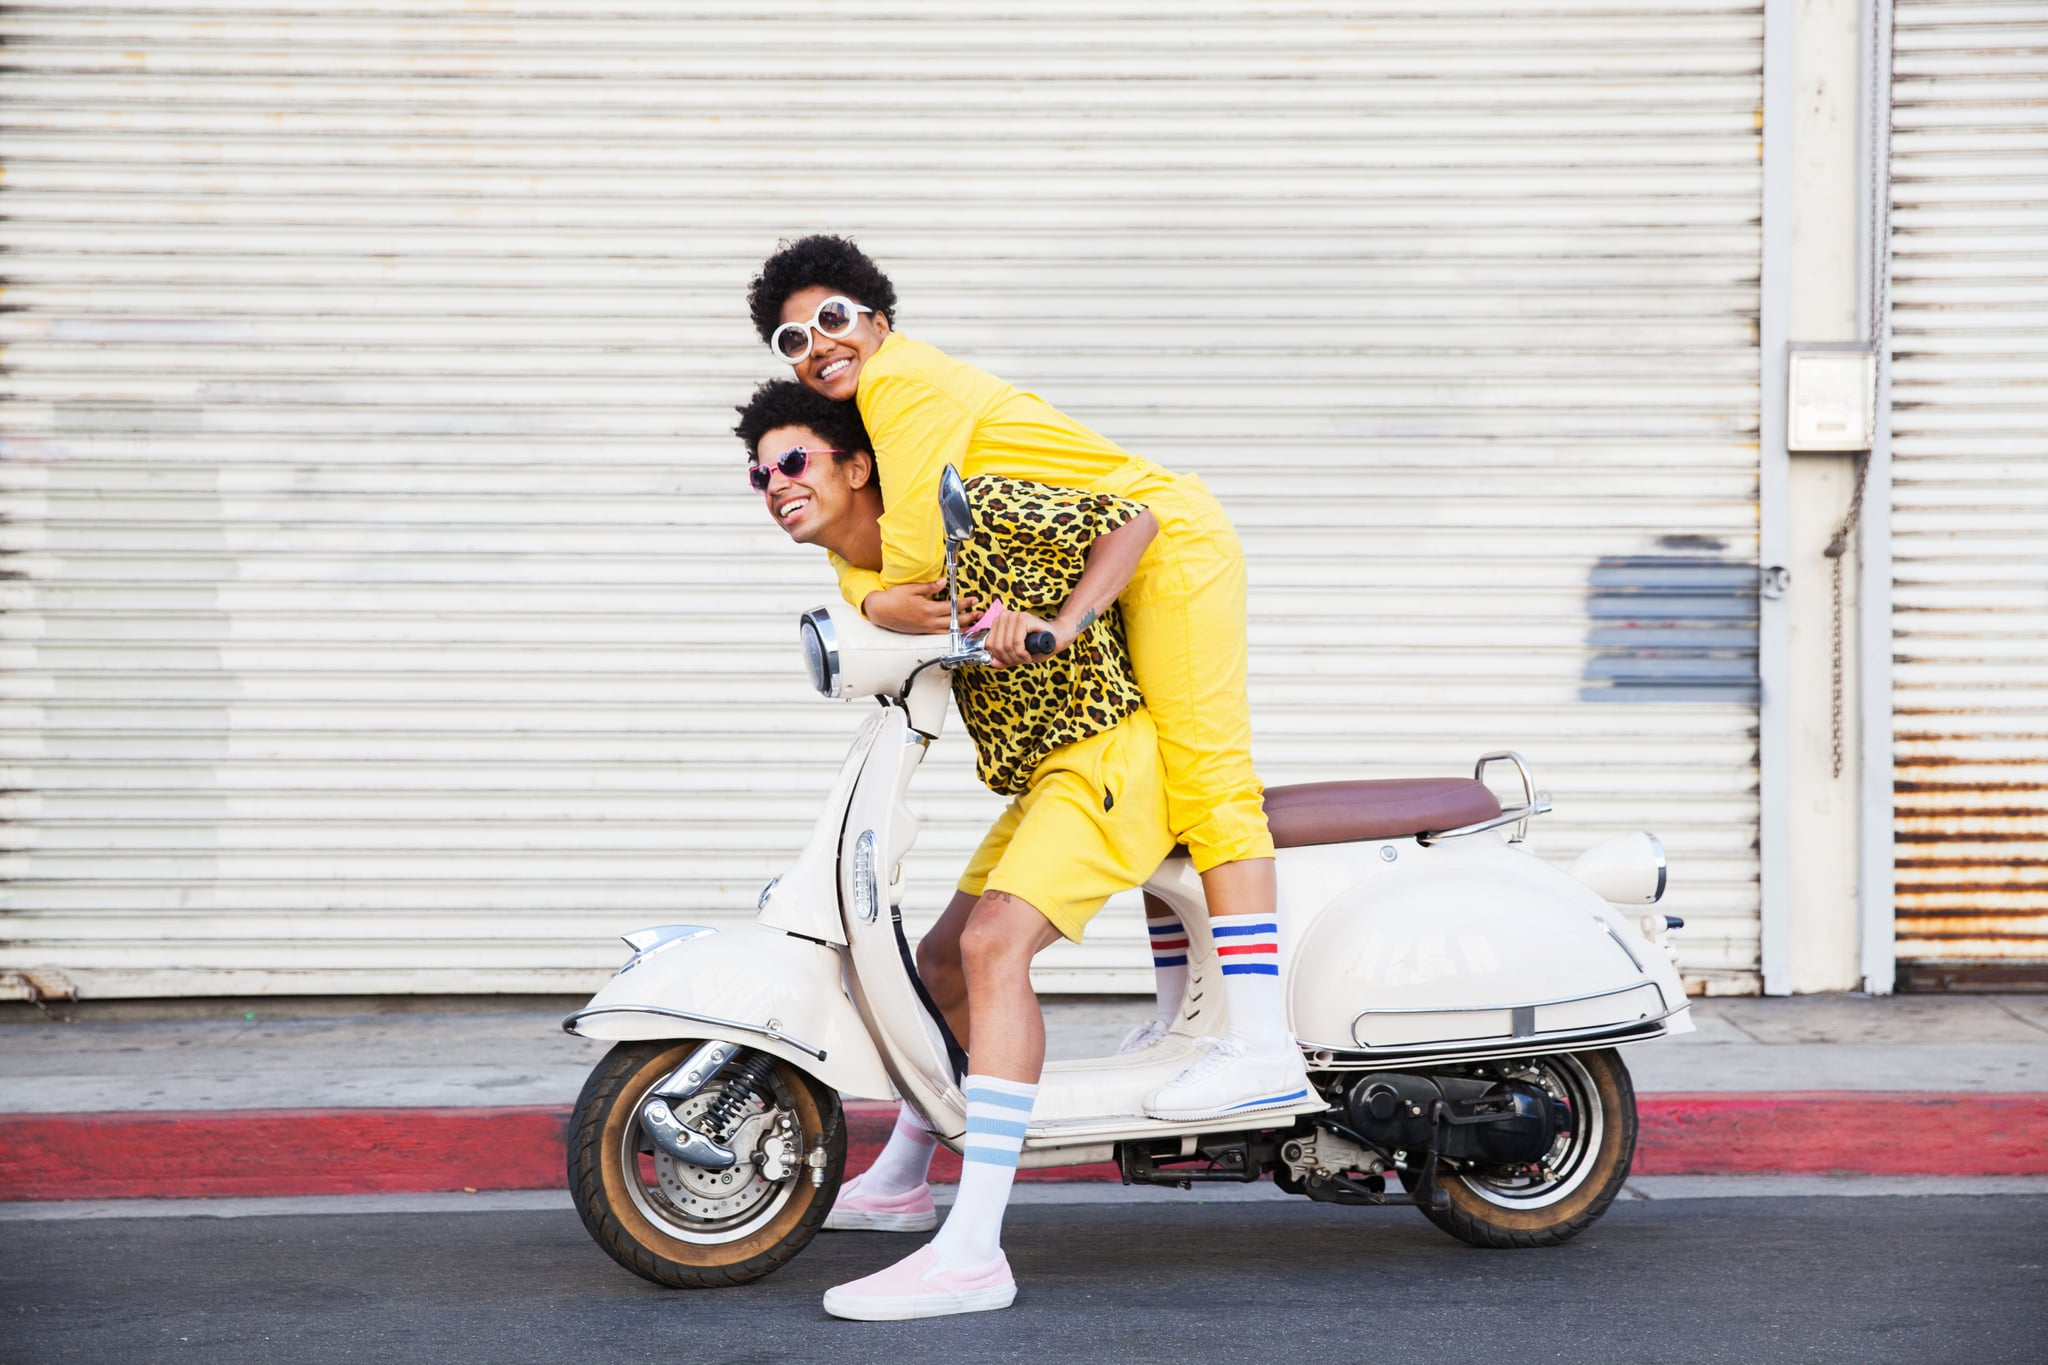 A hip young African American couple wearing bright yellow outfits posing on a scooter on a city street